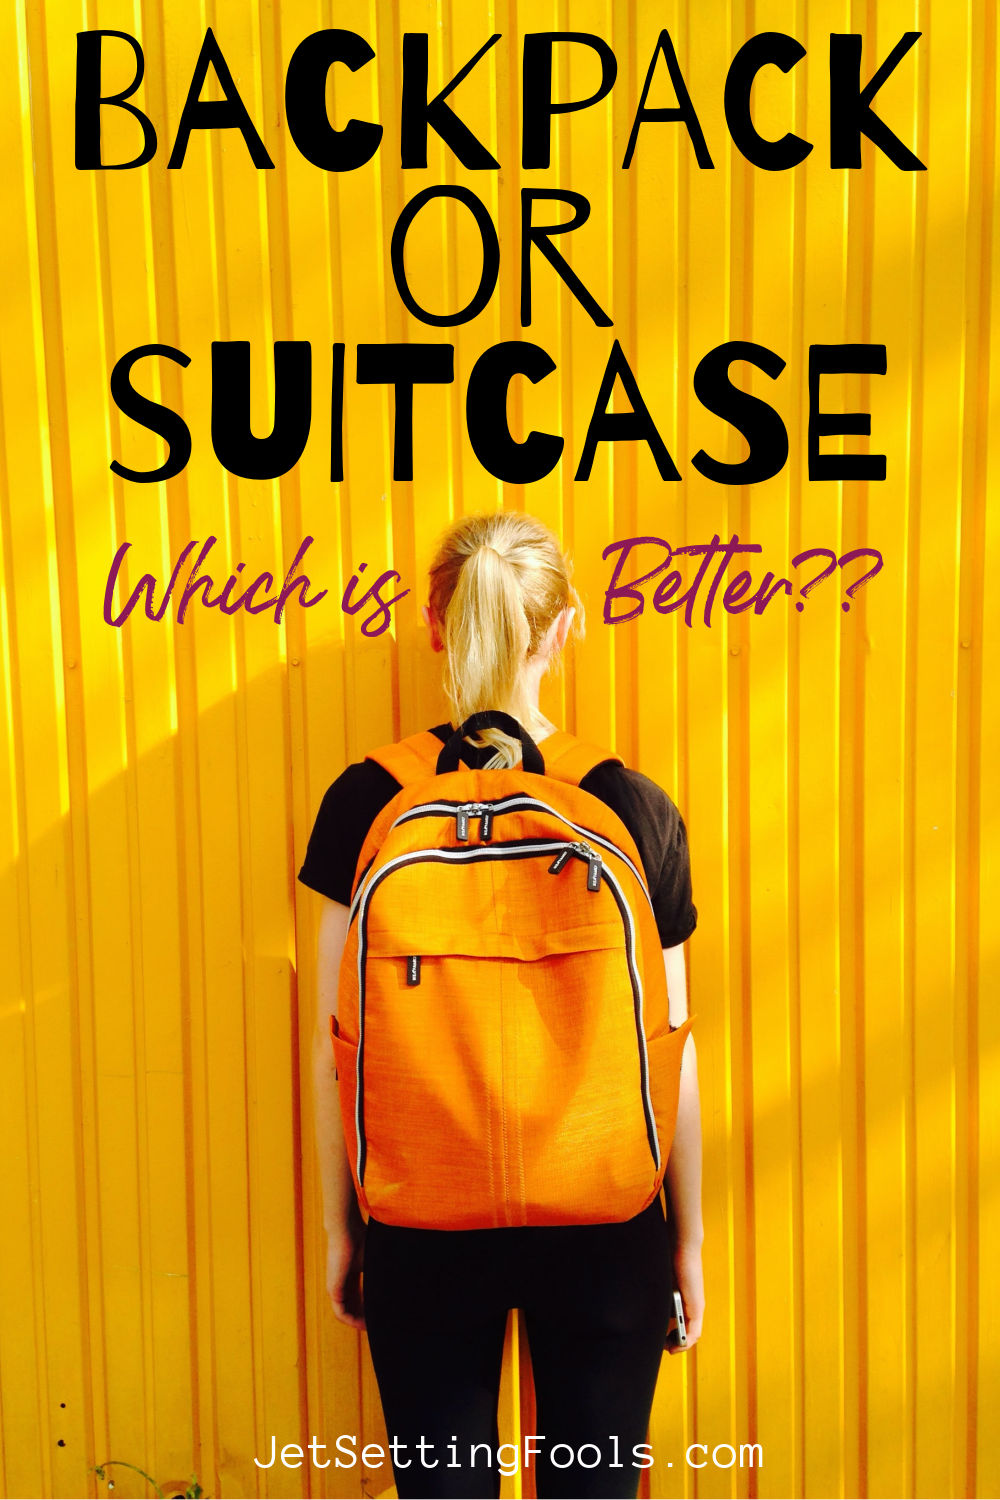 Backpack or Suitcase Which is Better by JetSettingFools.com